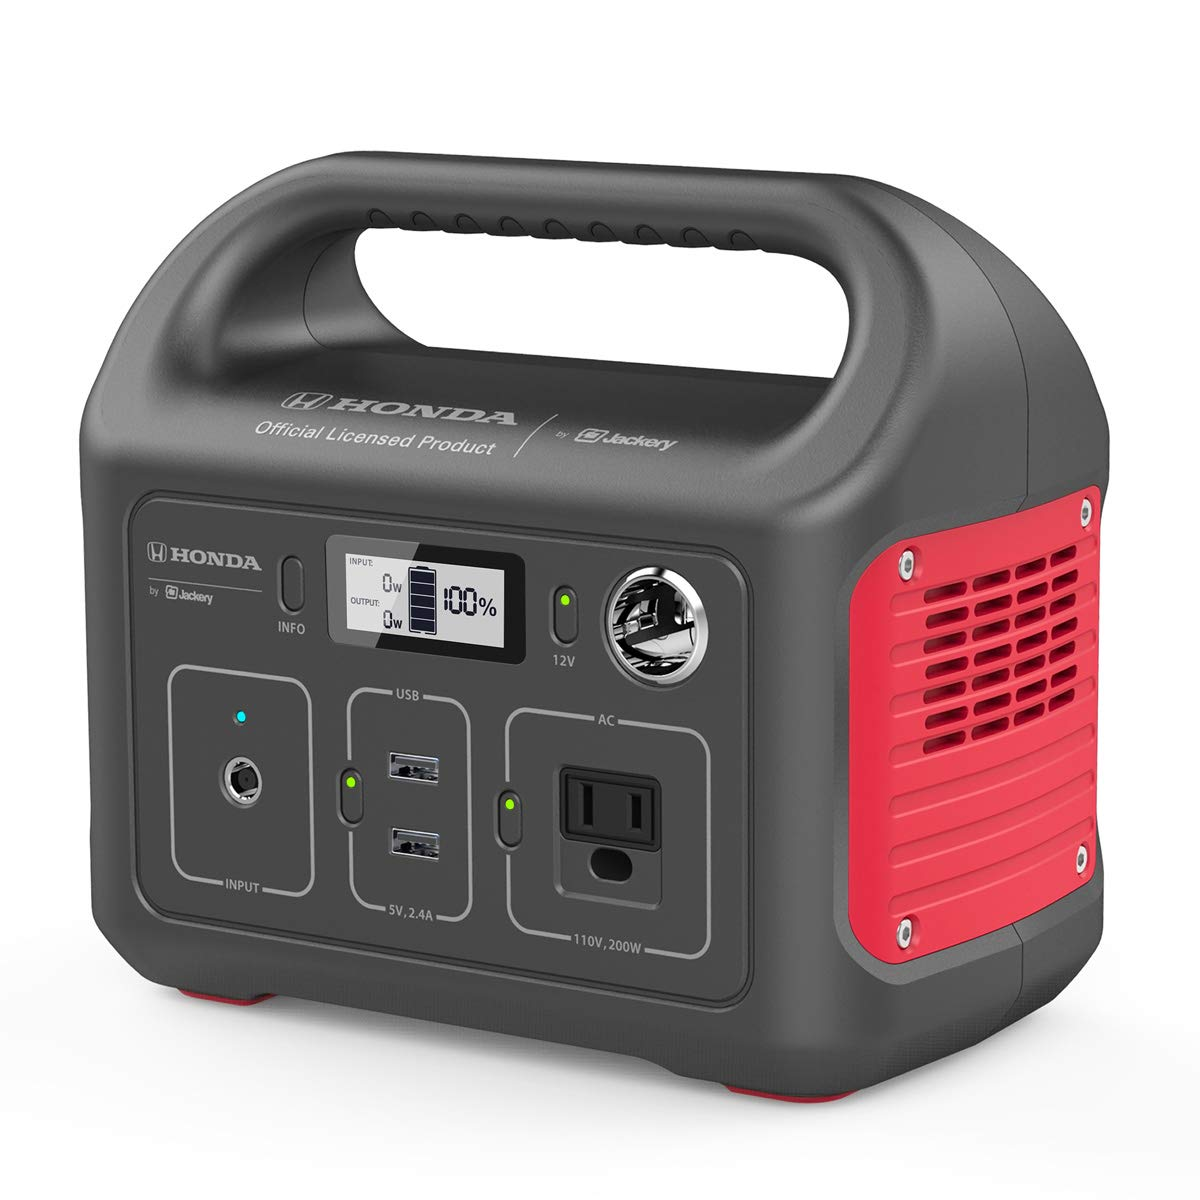 Honda by Jackery HLS 290 Portable Lithium Battery Mobile Power Station, Emergency Power Pack and External Battery Charger, Gas-Free Generator Alternative, Honda Official Licensed Product by Jackery by Jackery